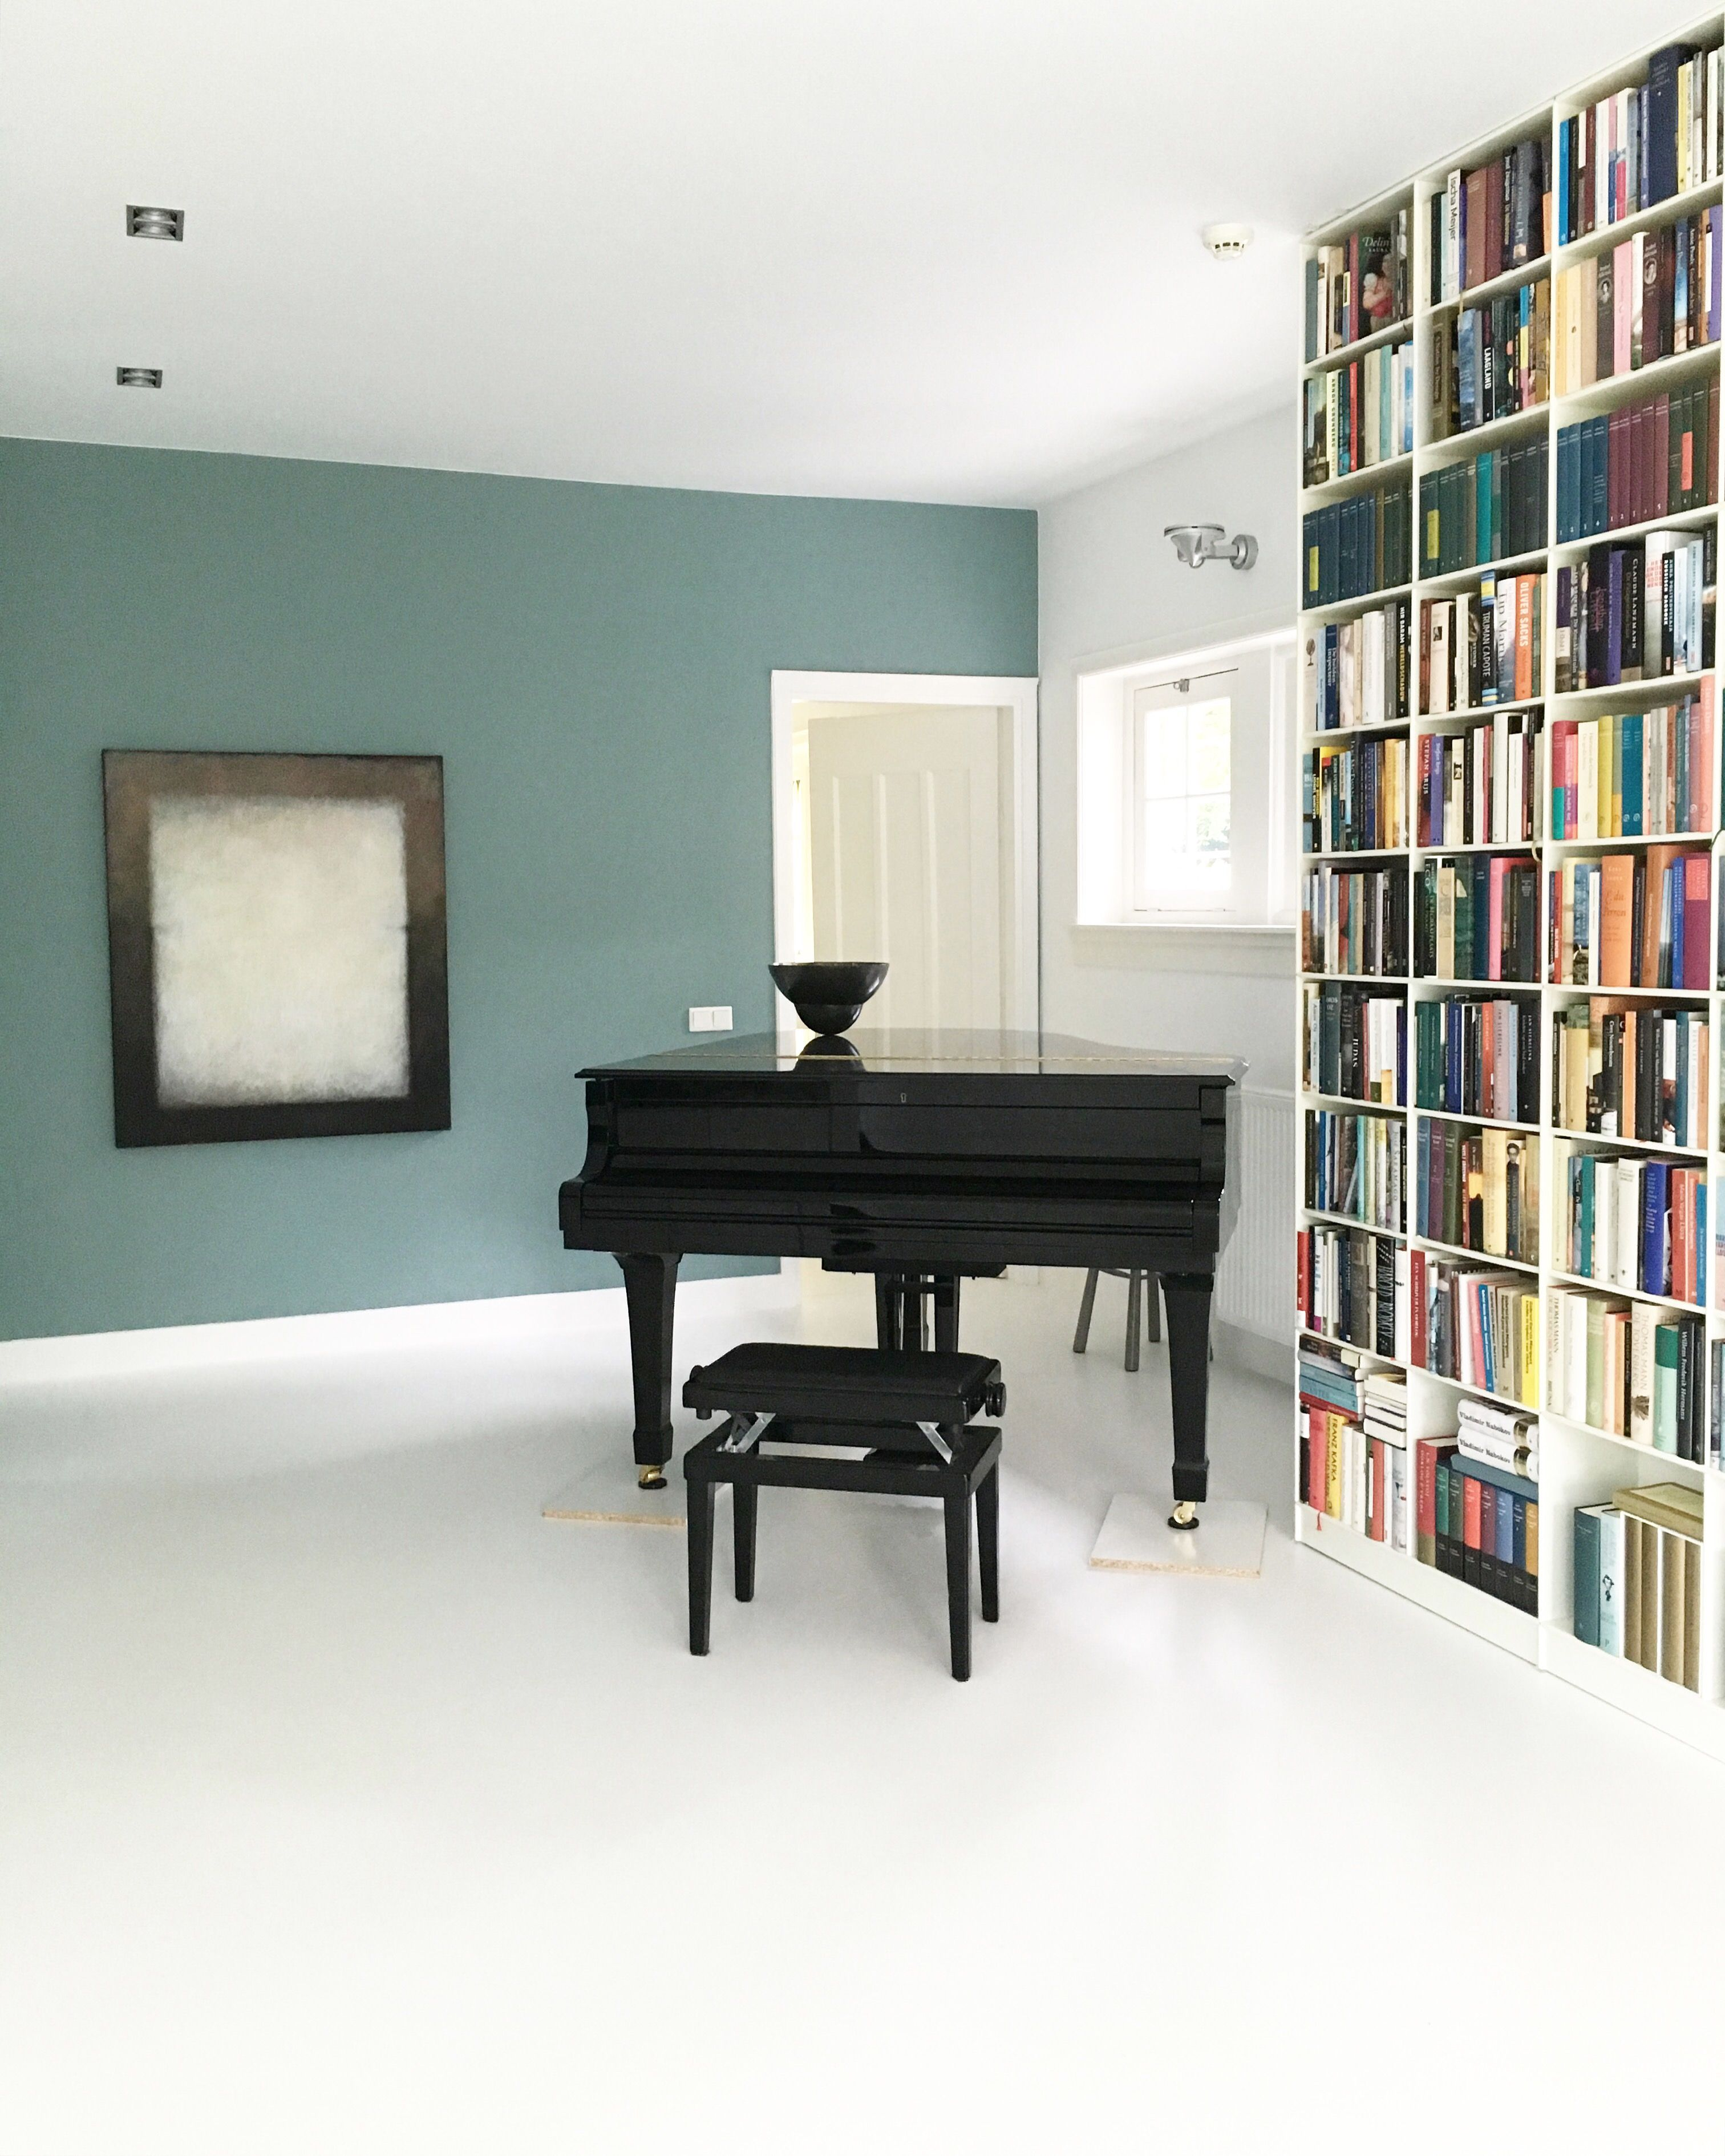 Awesome Interieur Kleuradvies Images - Ideeën Voor Thuis ...